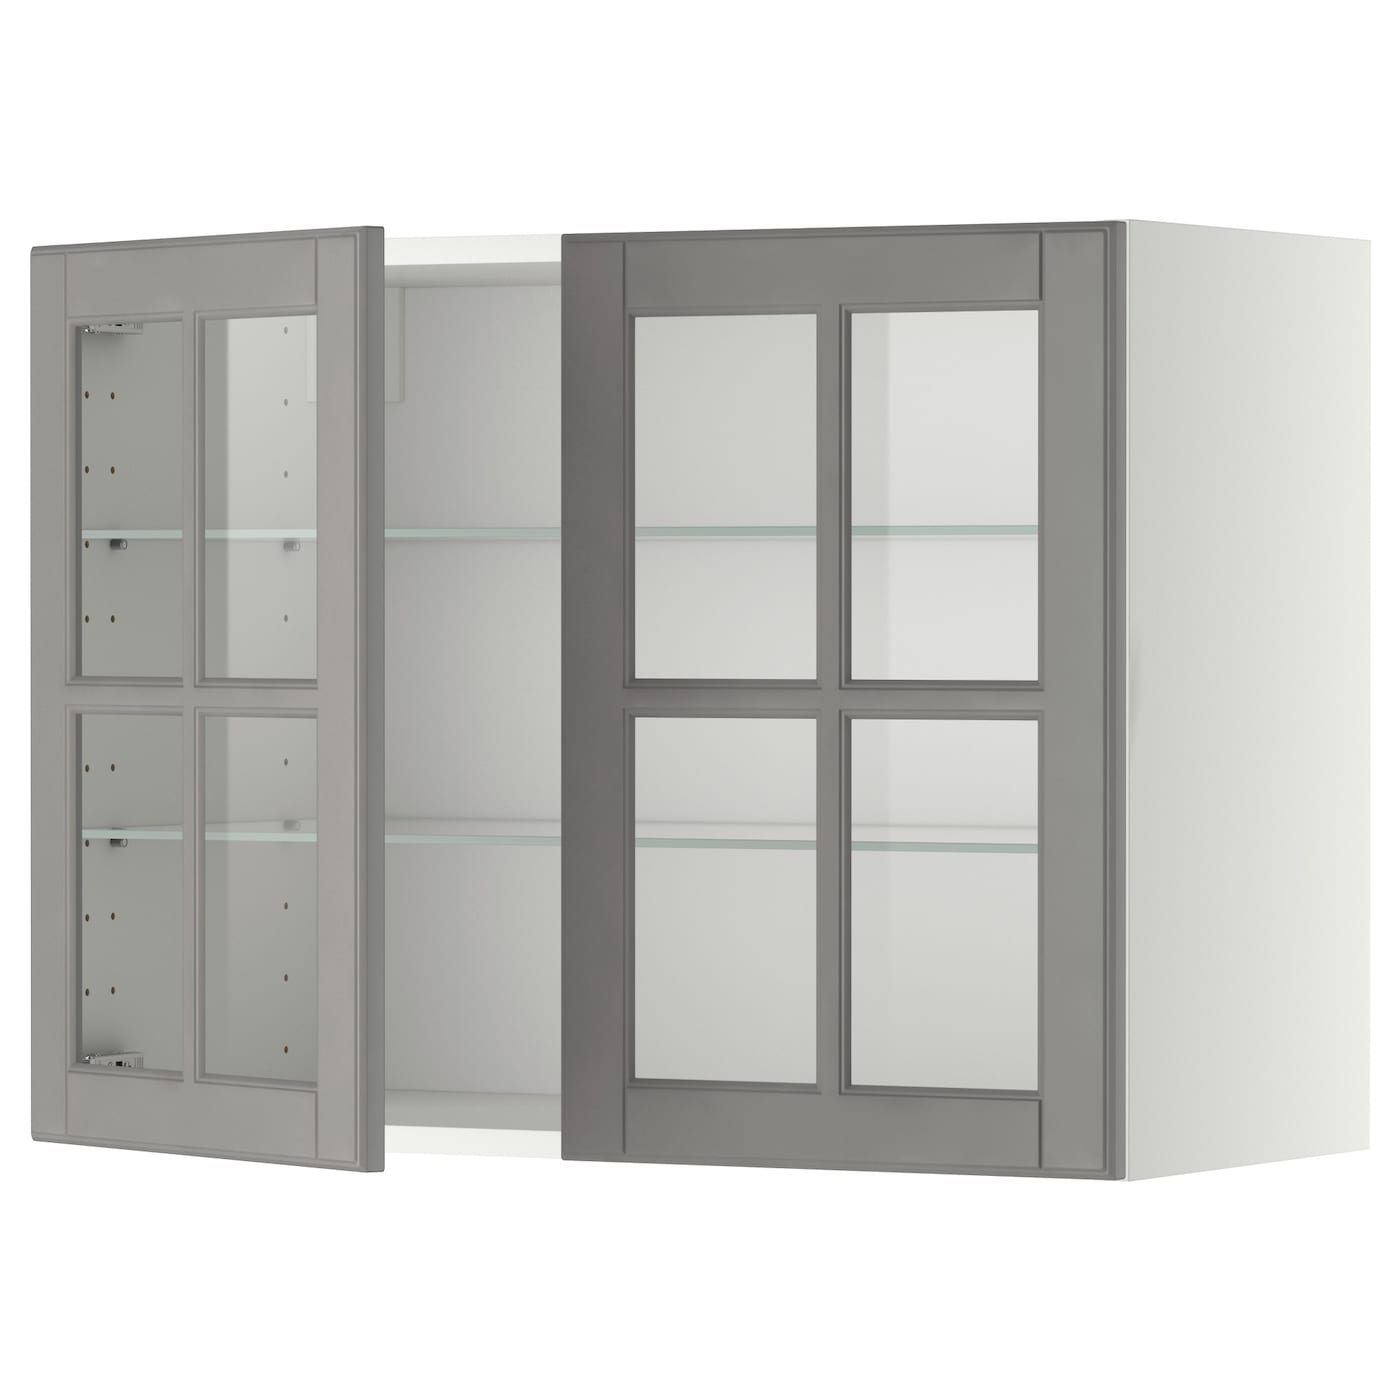 Metod Wall Cabinet W Shelves 2 Glass Drs White Bodbyn Grey